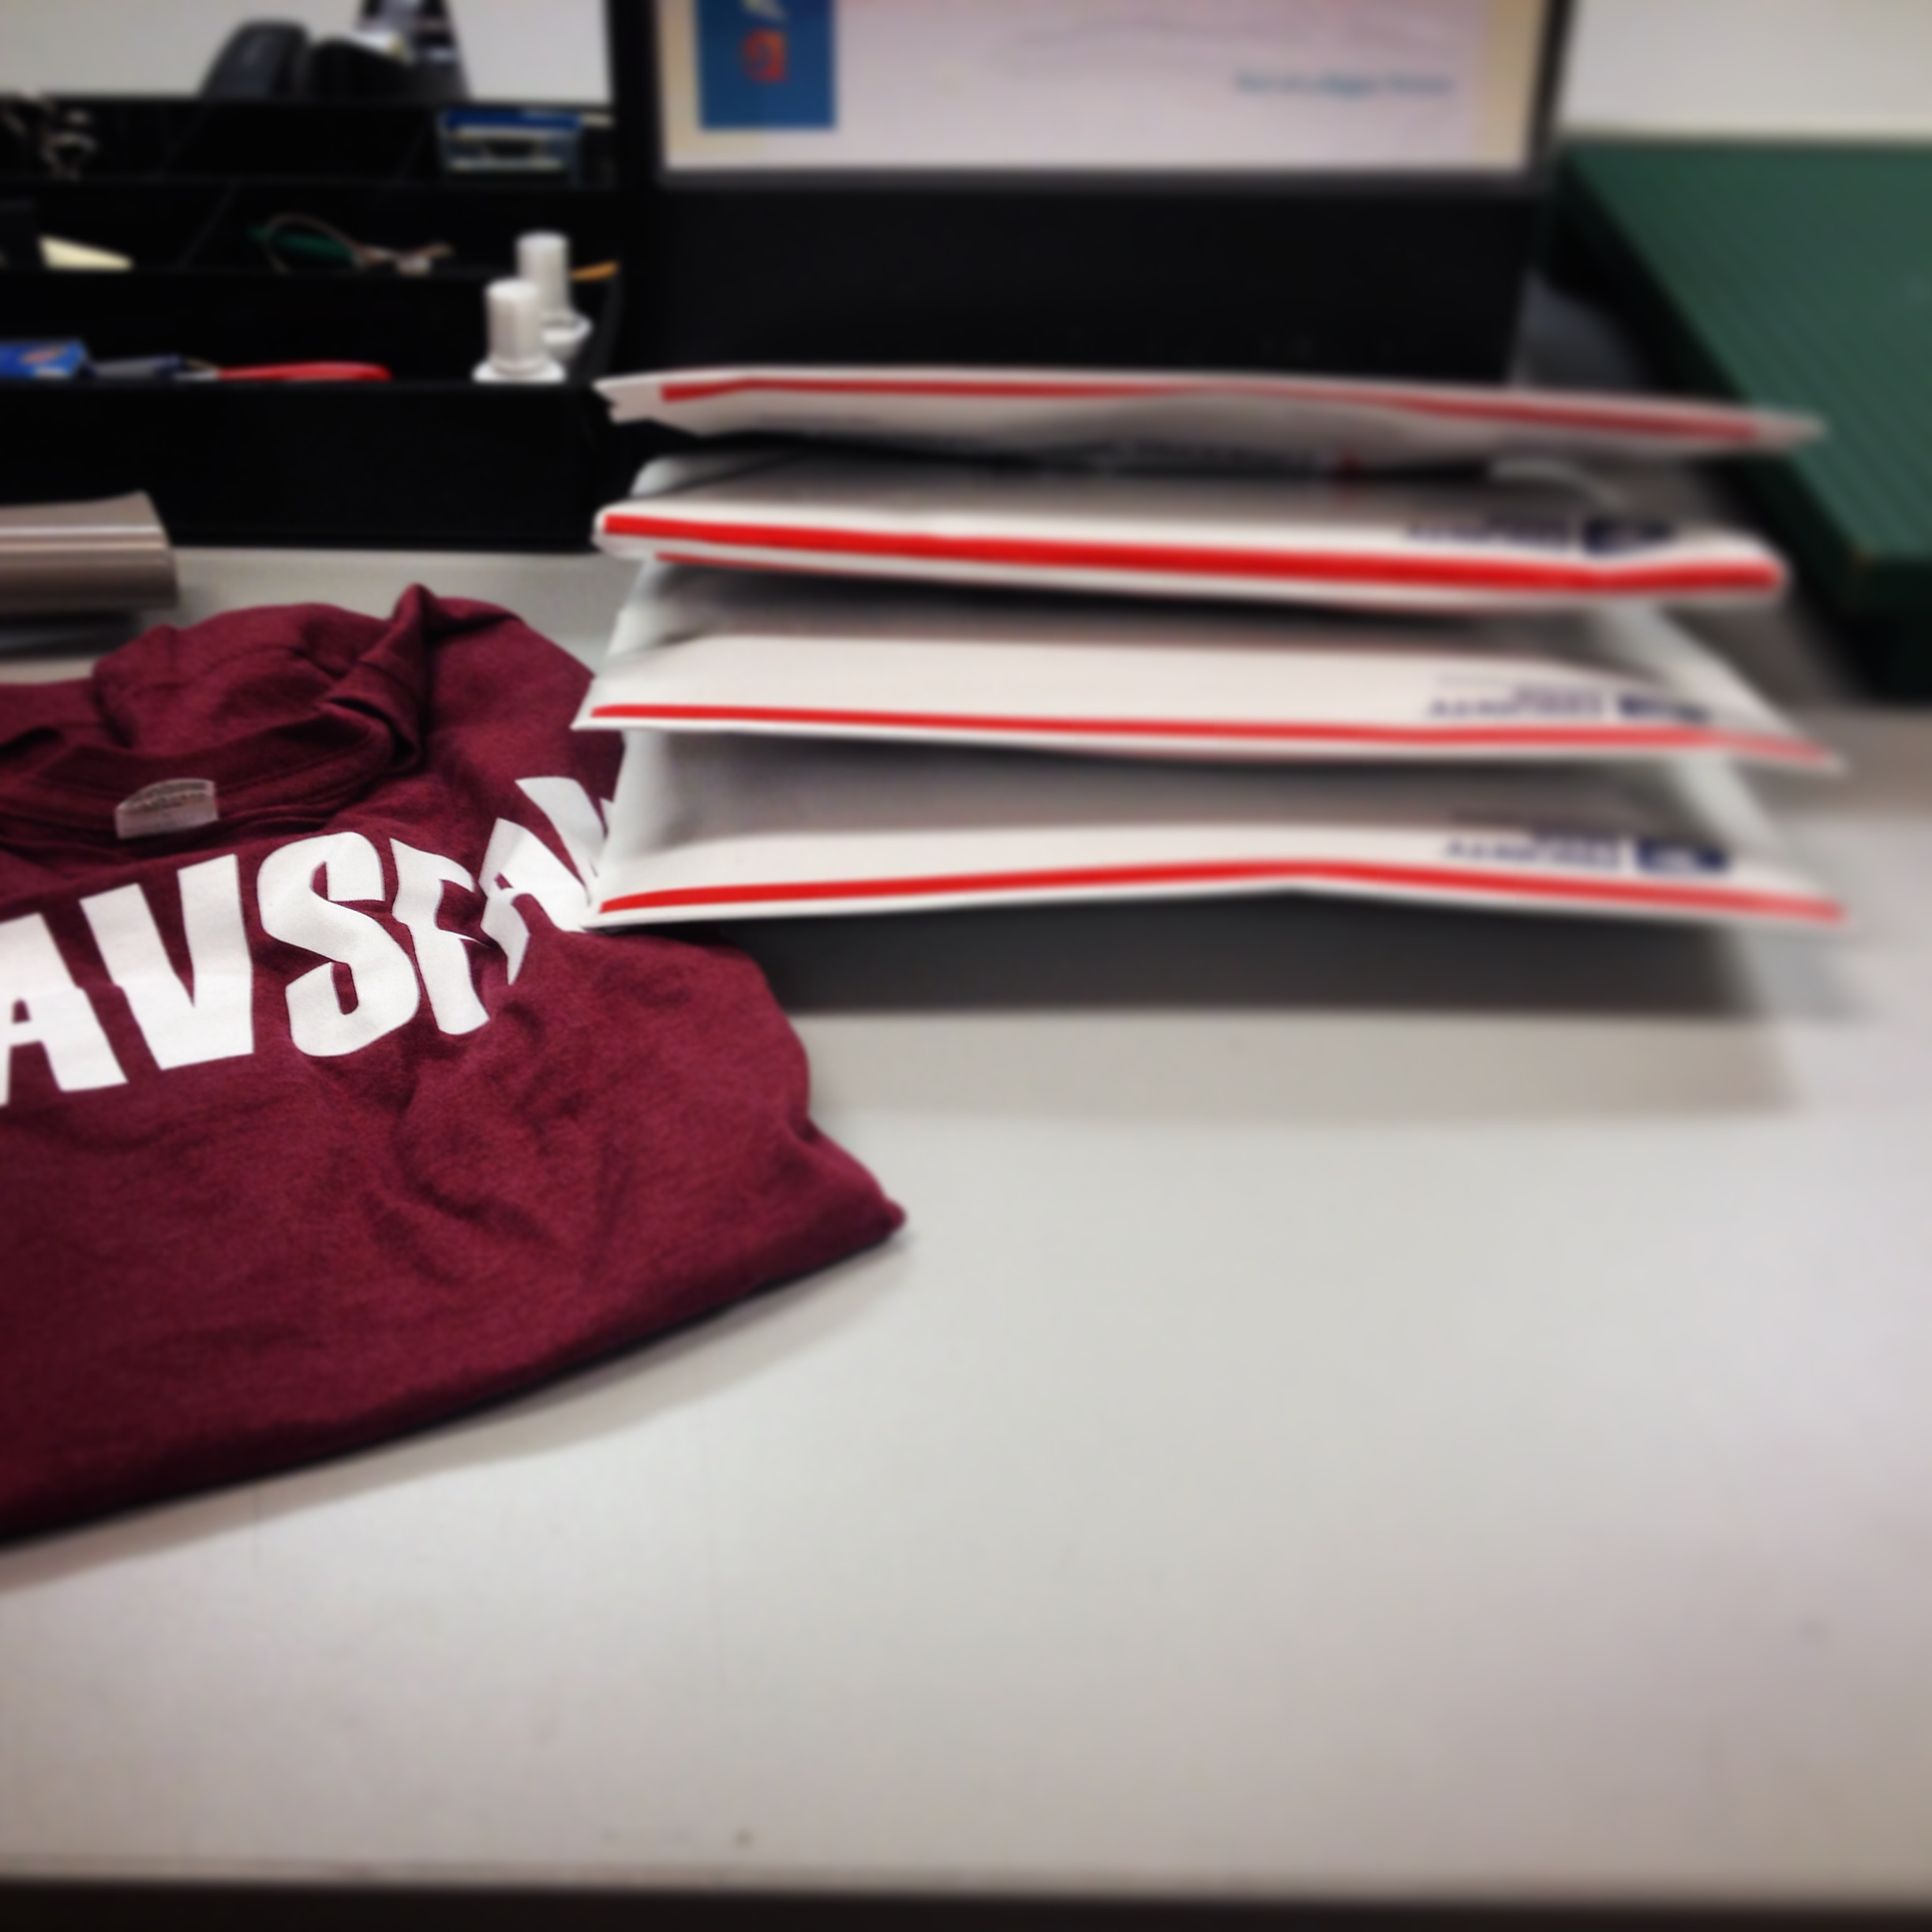 #AvsFam shirts ready to ship to adoring new owners!